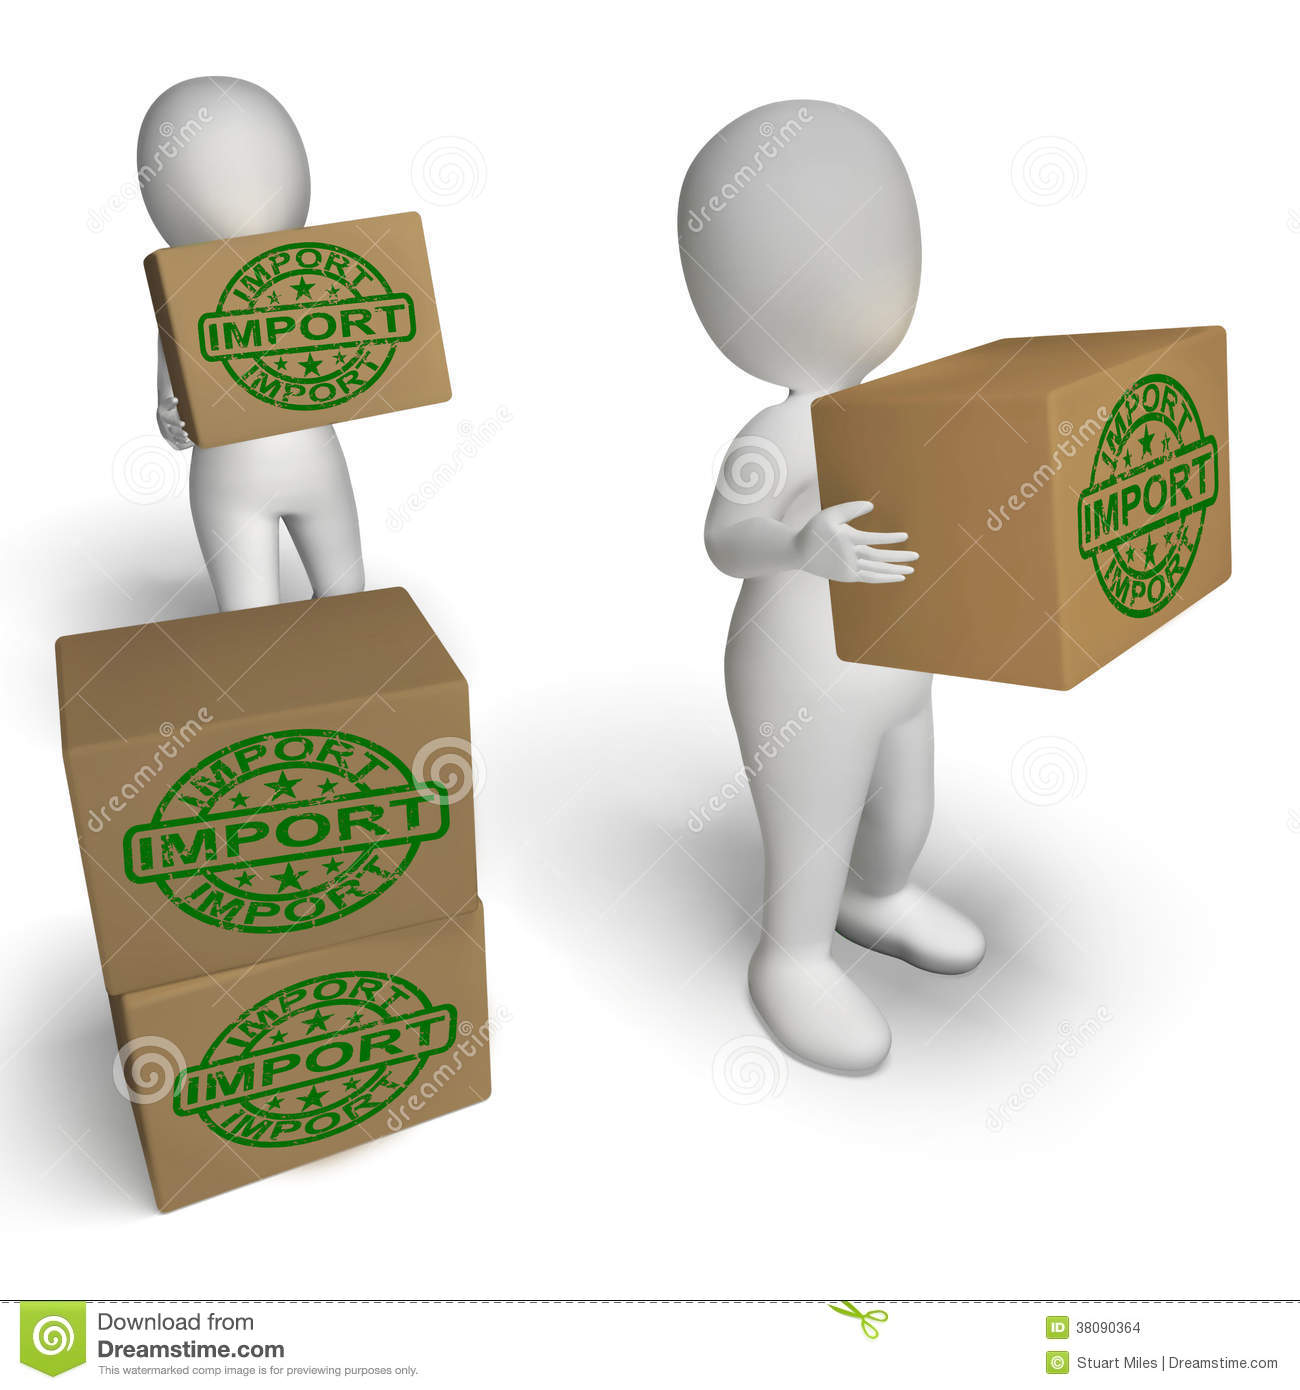 Import Boxes Show Importing Goods And Merchandise Stock Images.